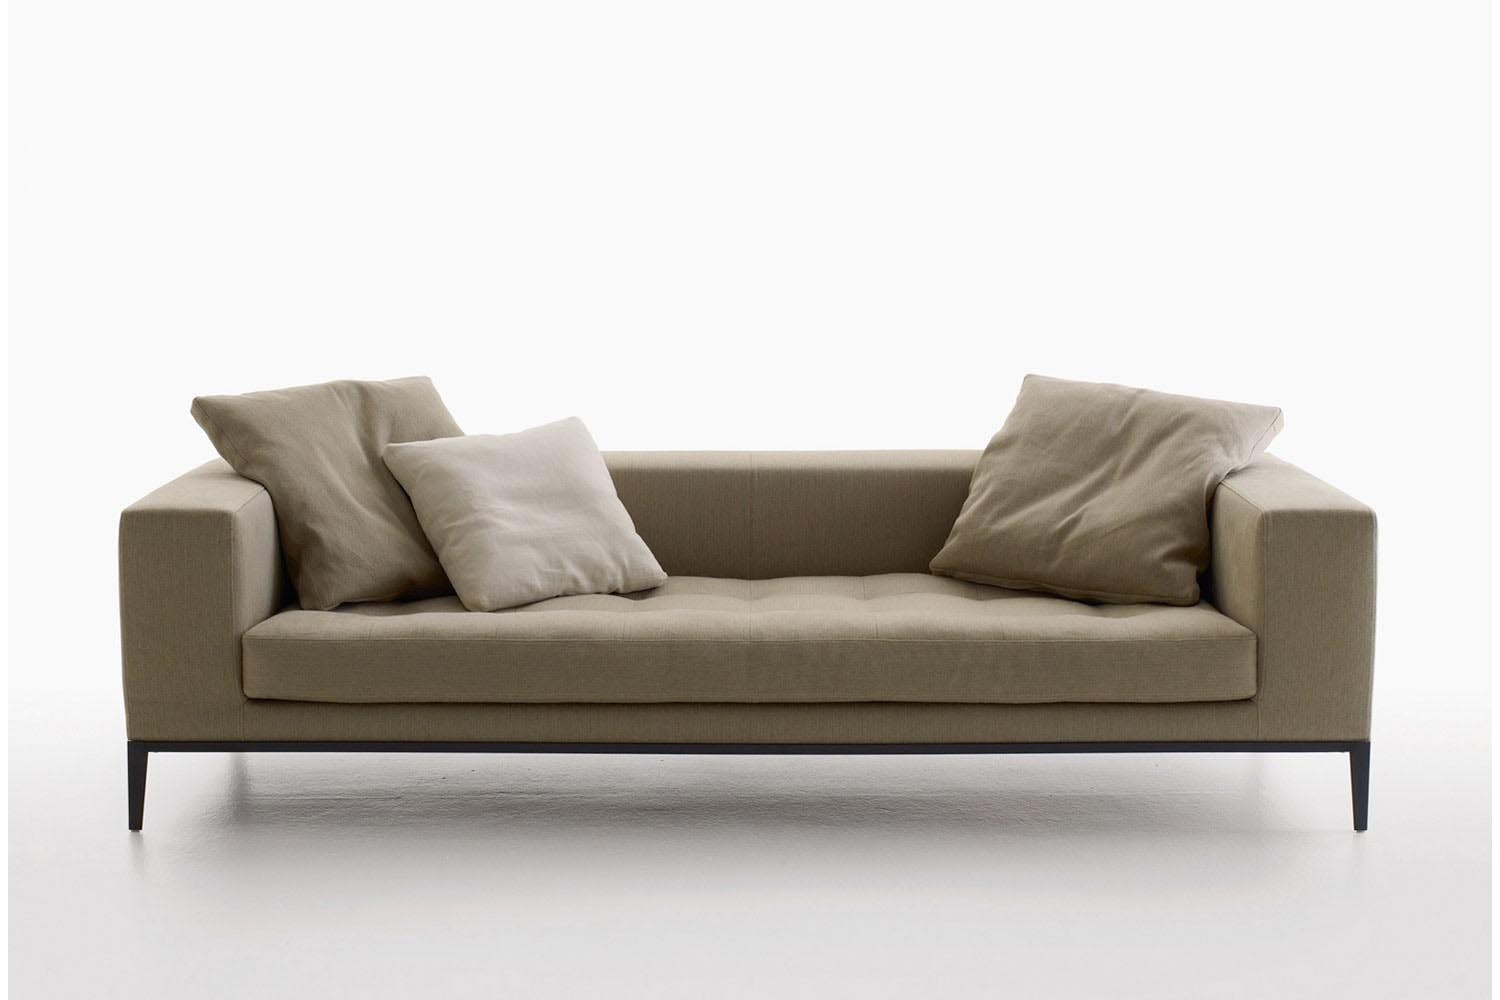 Simplex sofa by antonio citterio for maxalto space furniture for B b italia maxalto sofa